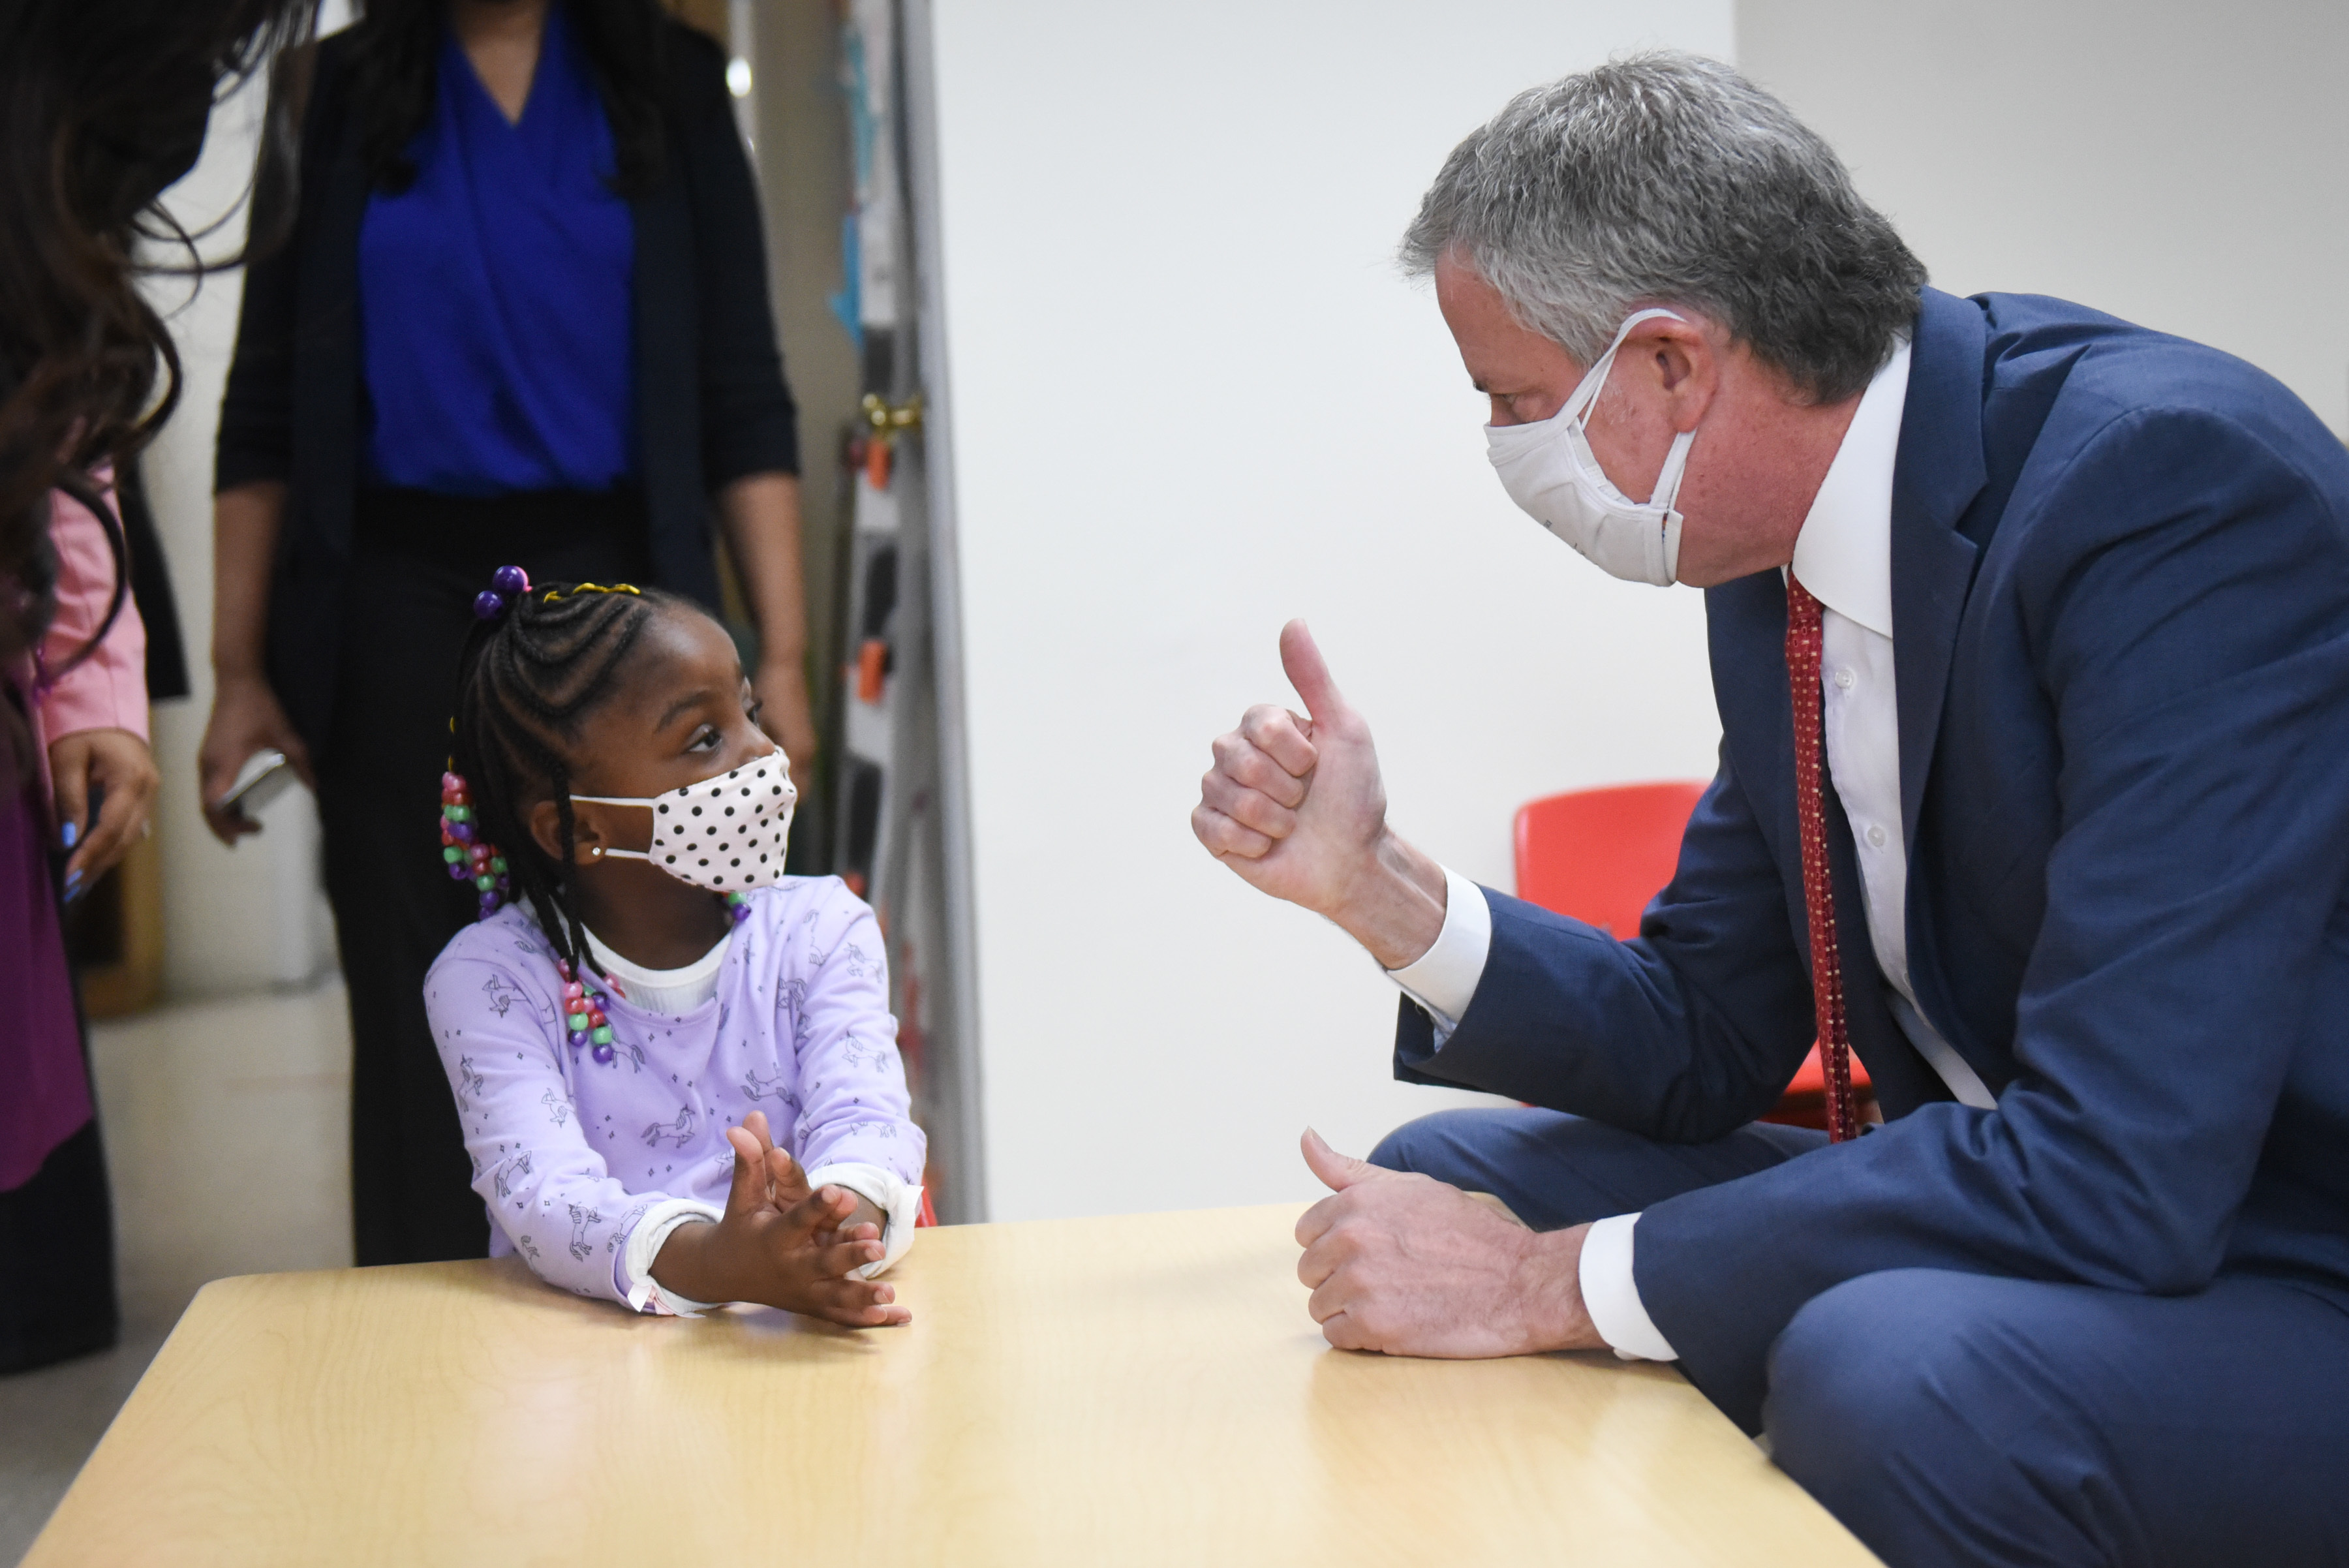 Mayor Bill de Blasio Chancellor Porter will join school leadership at Phyl's Academy in Brooklyn to announce 3K for all and visit Pre-K students in class March 23, 2021. Michael Appleton/Mayoral Photography Office